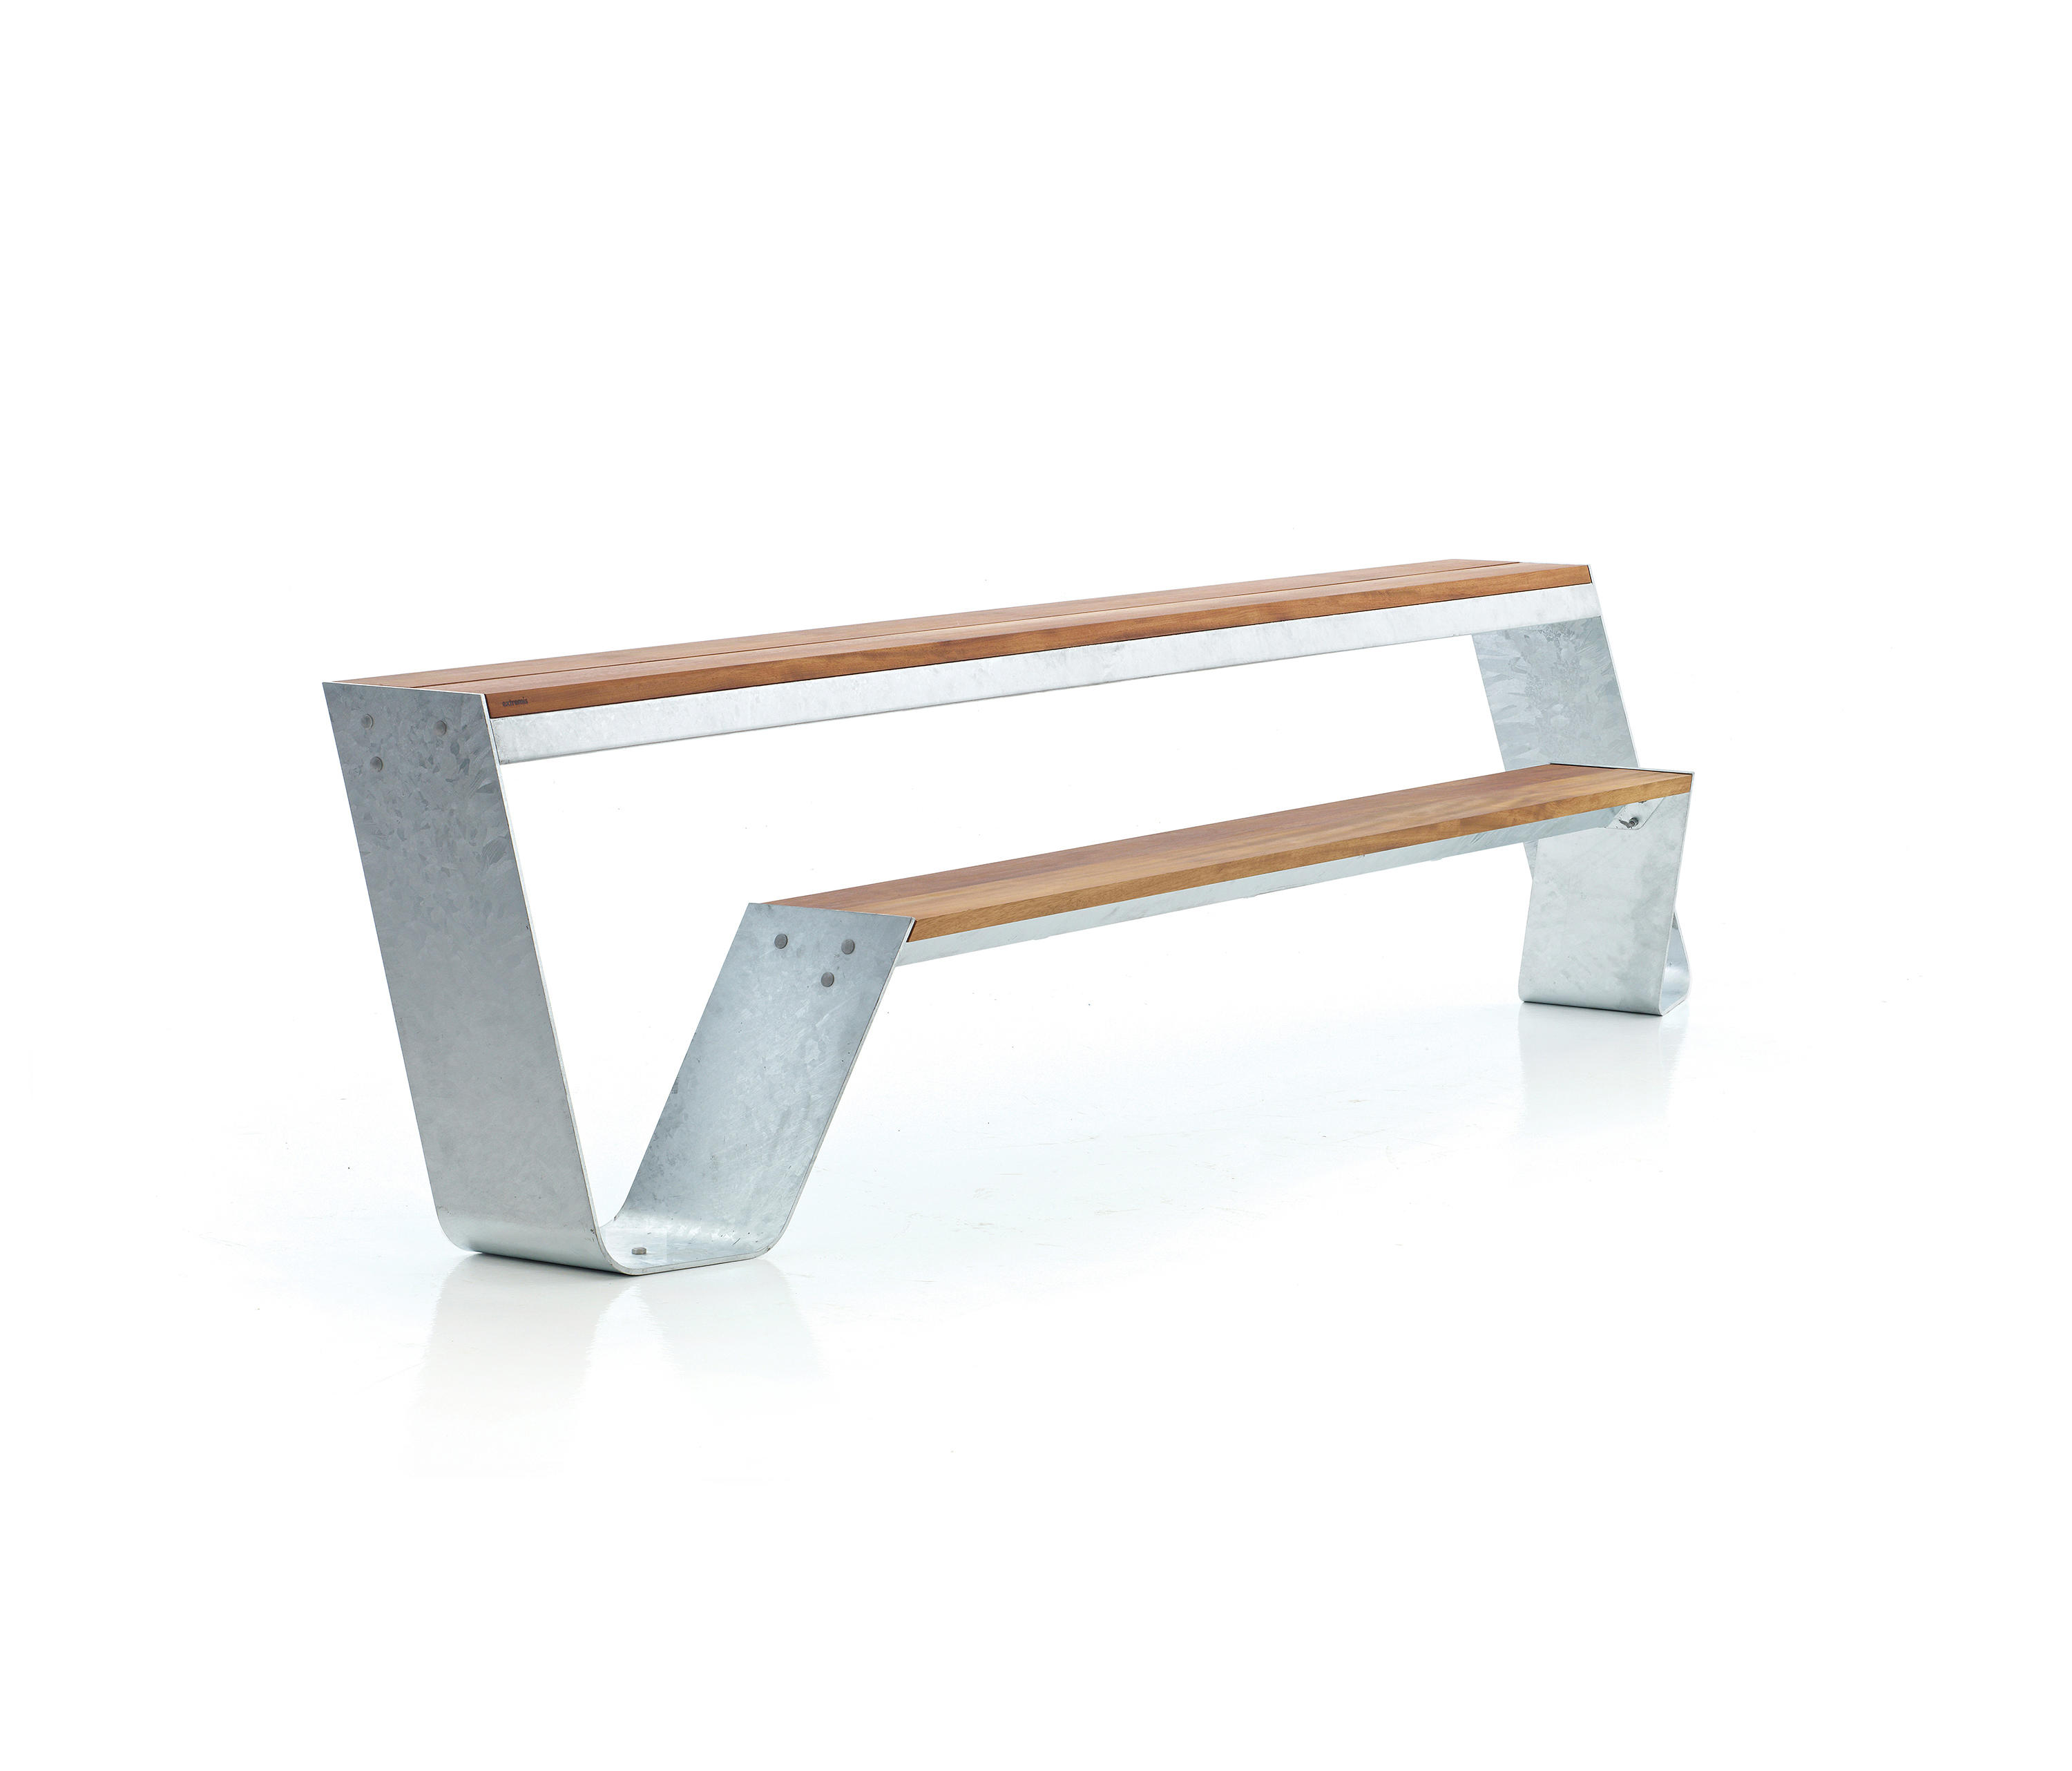 Enjoyable Hopper Bench High Quality Designer Products Architonic Alphanode Cool Chair Designs And Ideas Alphanodeonline